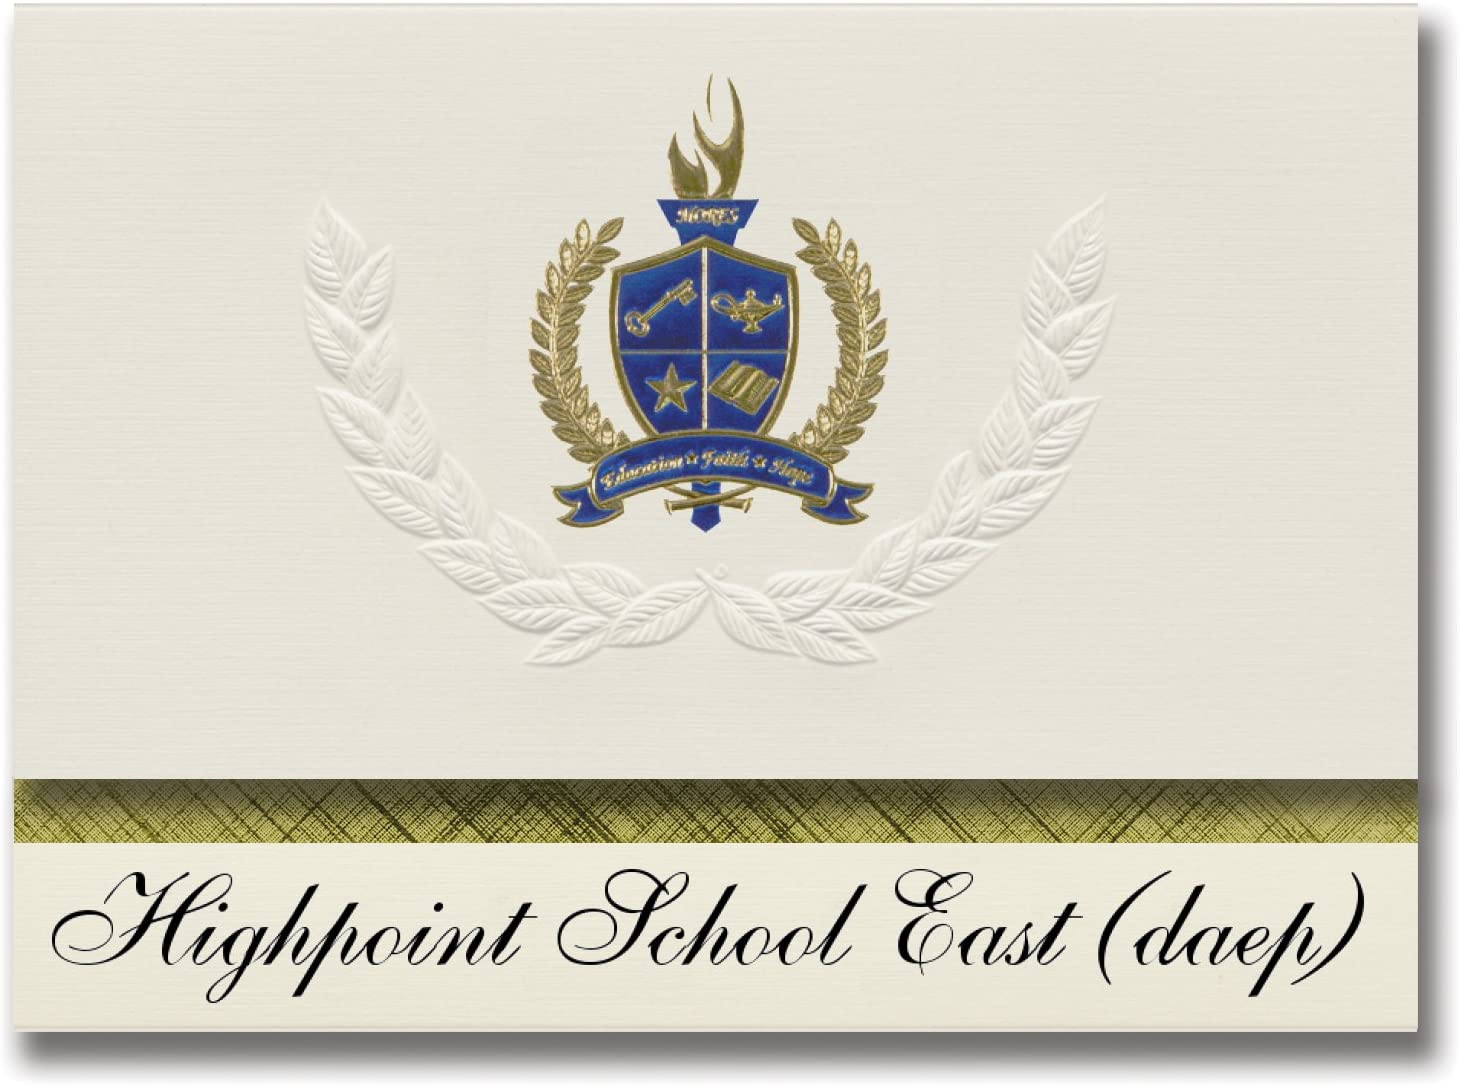 Signature Announcements Highpoint School East (daep) (Houston, TX) Graduation Announcements, Presidential style, Elite package of 25 with Gold & Blue Metallic Foil seal